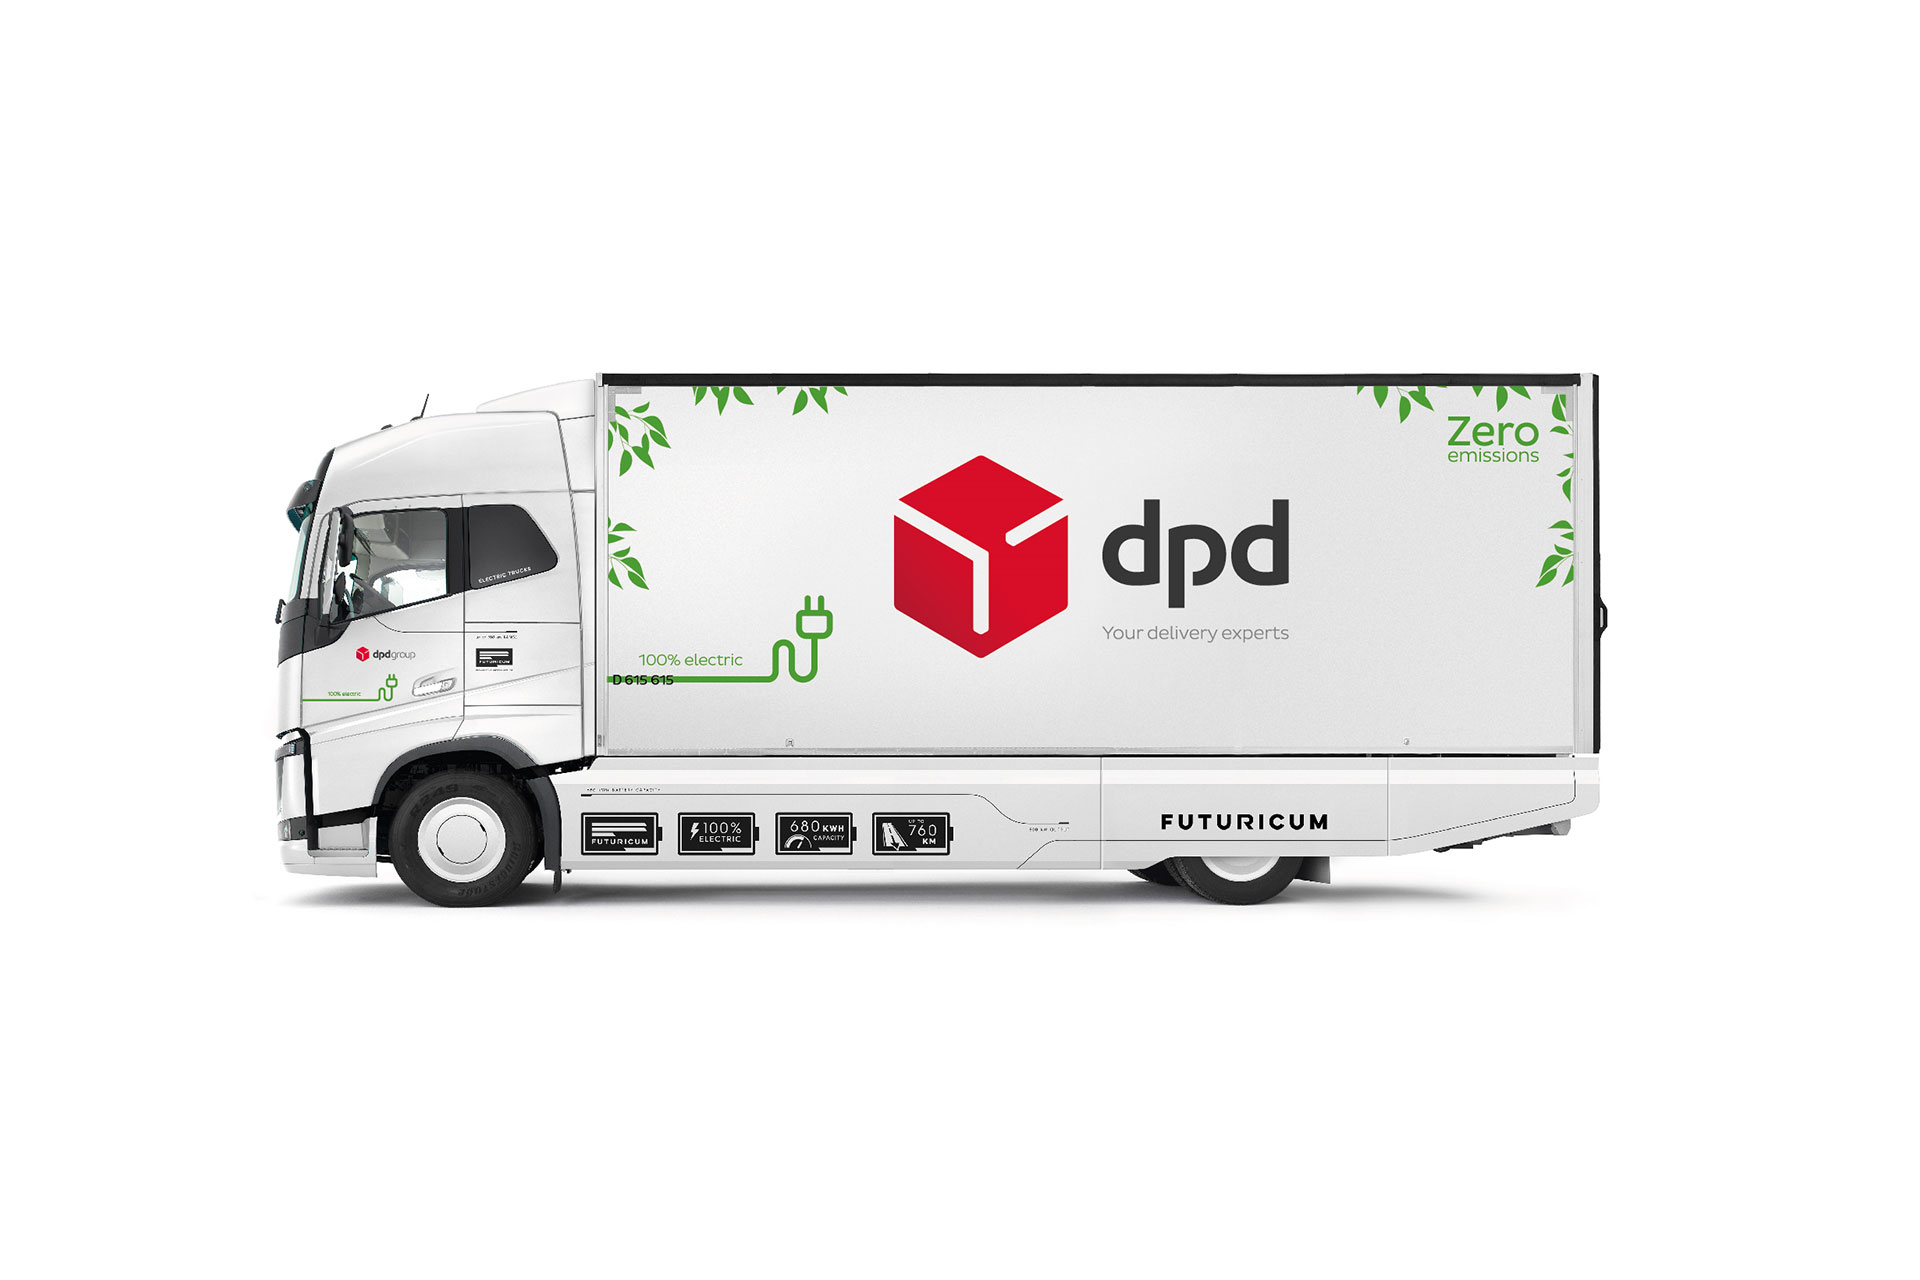 camion electrico DPD suiza